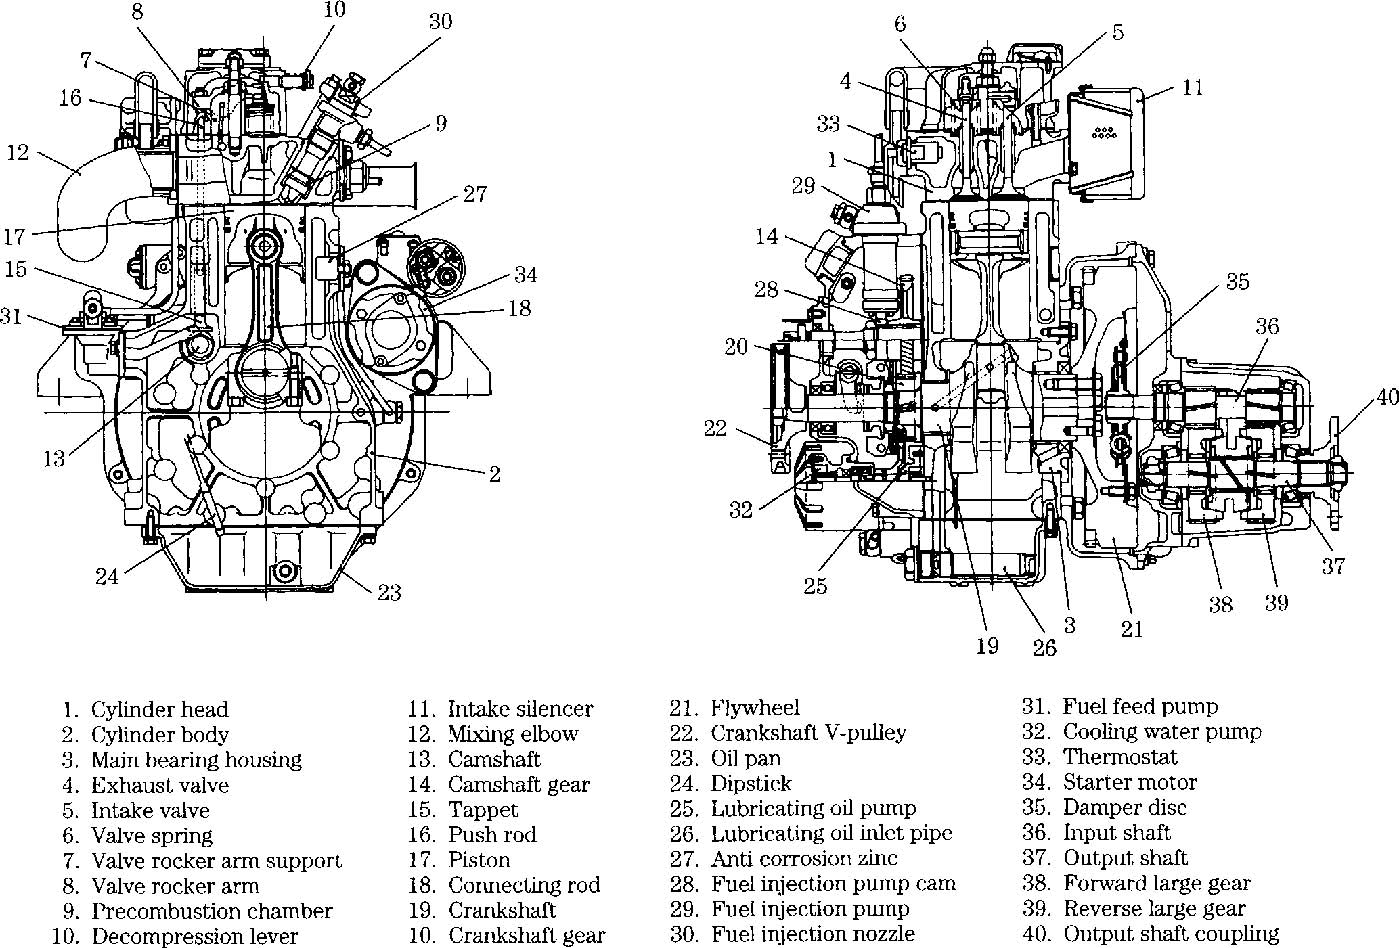 Yanmar Single Cylinder Diesel Engine Wiring Diagram 1gm10 Electrical Diagramrhsvlcus